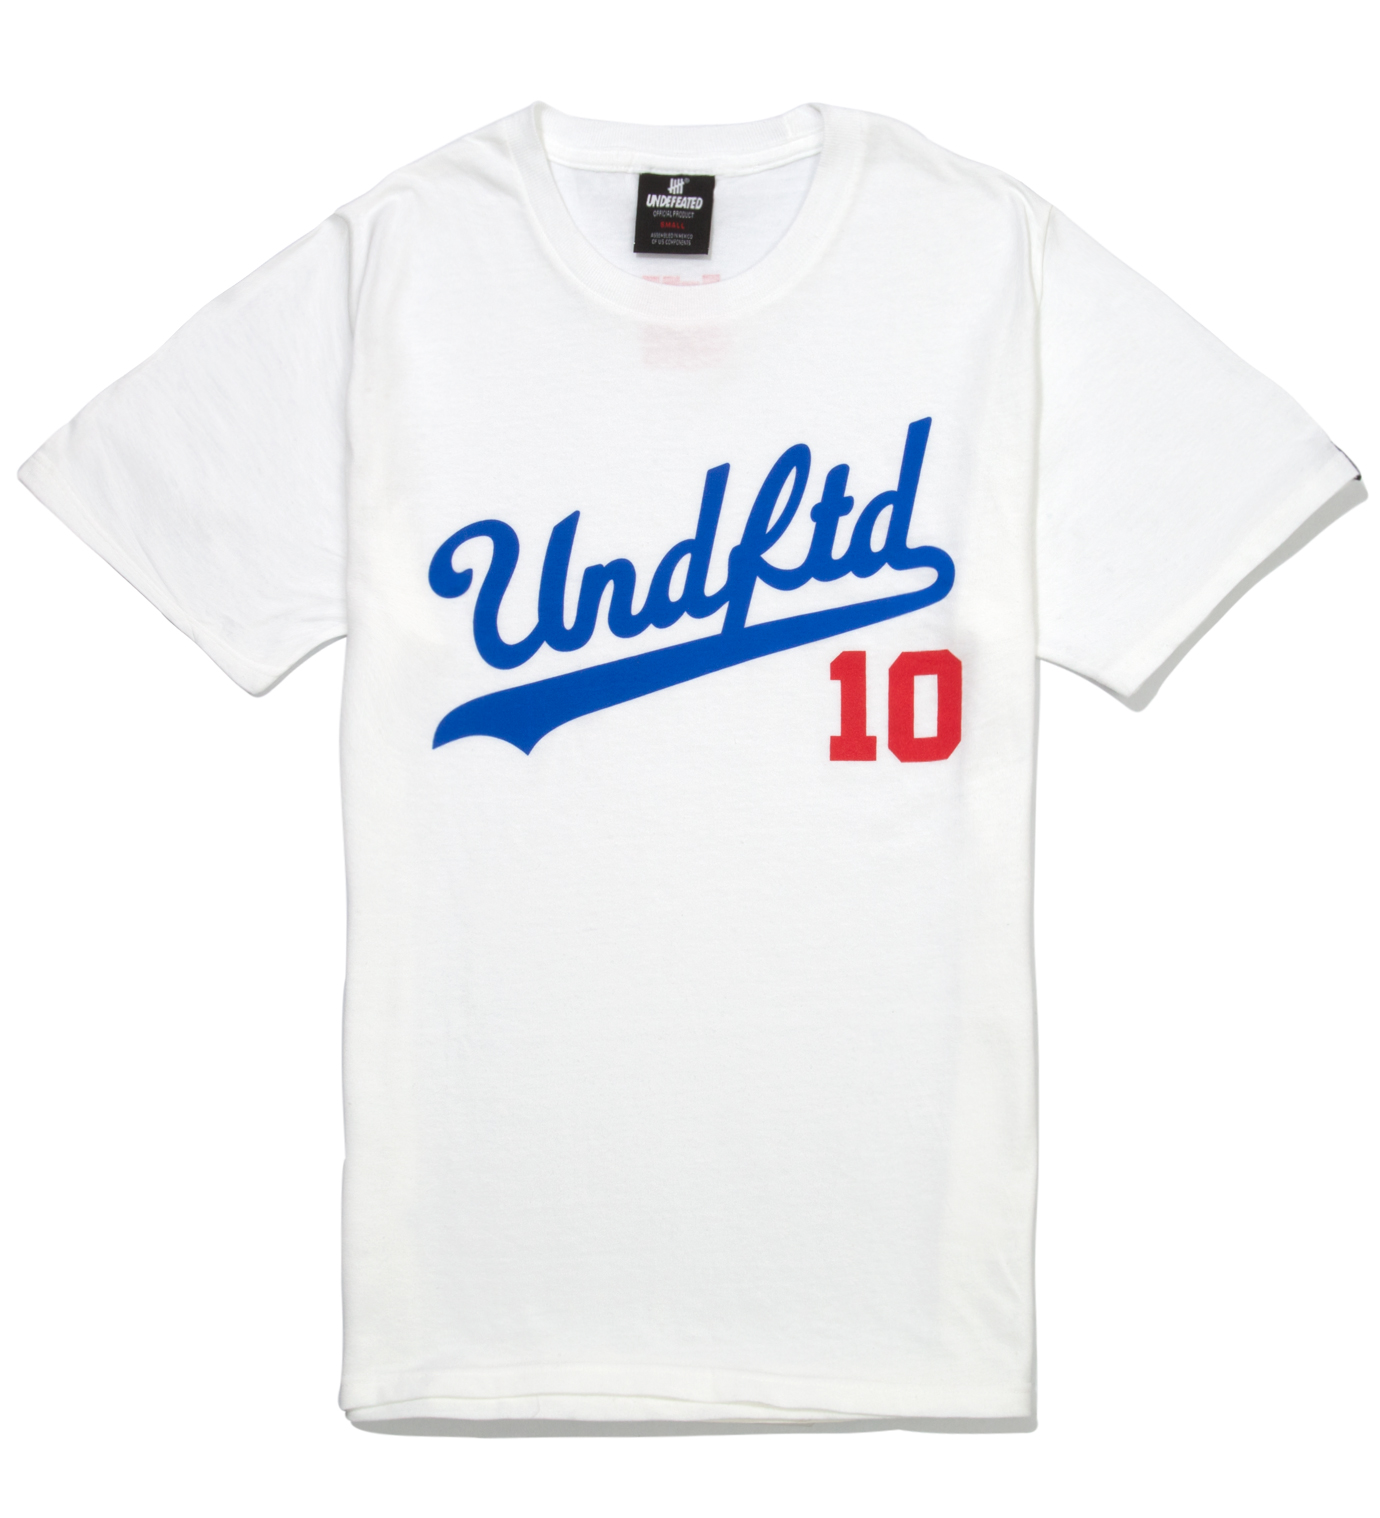 UNDEFEATED White SS UNDFTD 10 T-Shirt